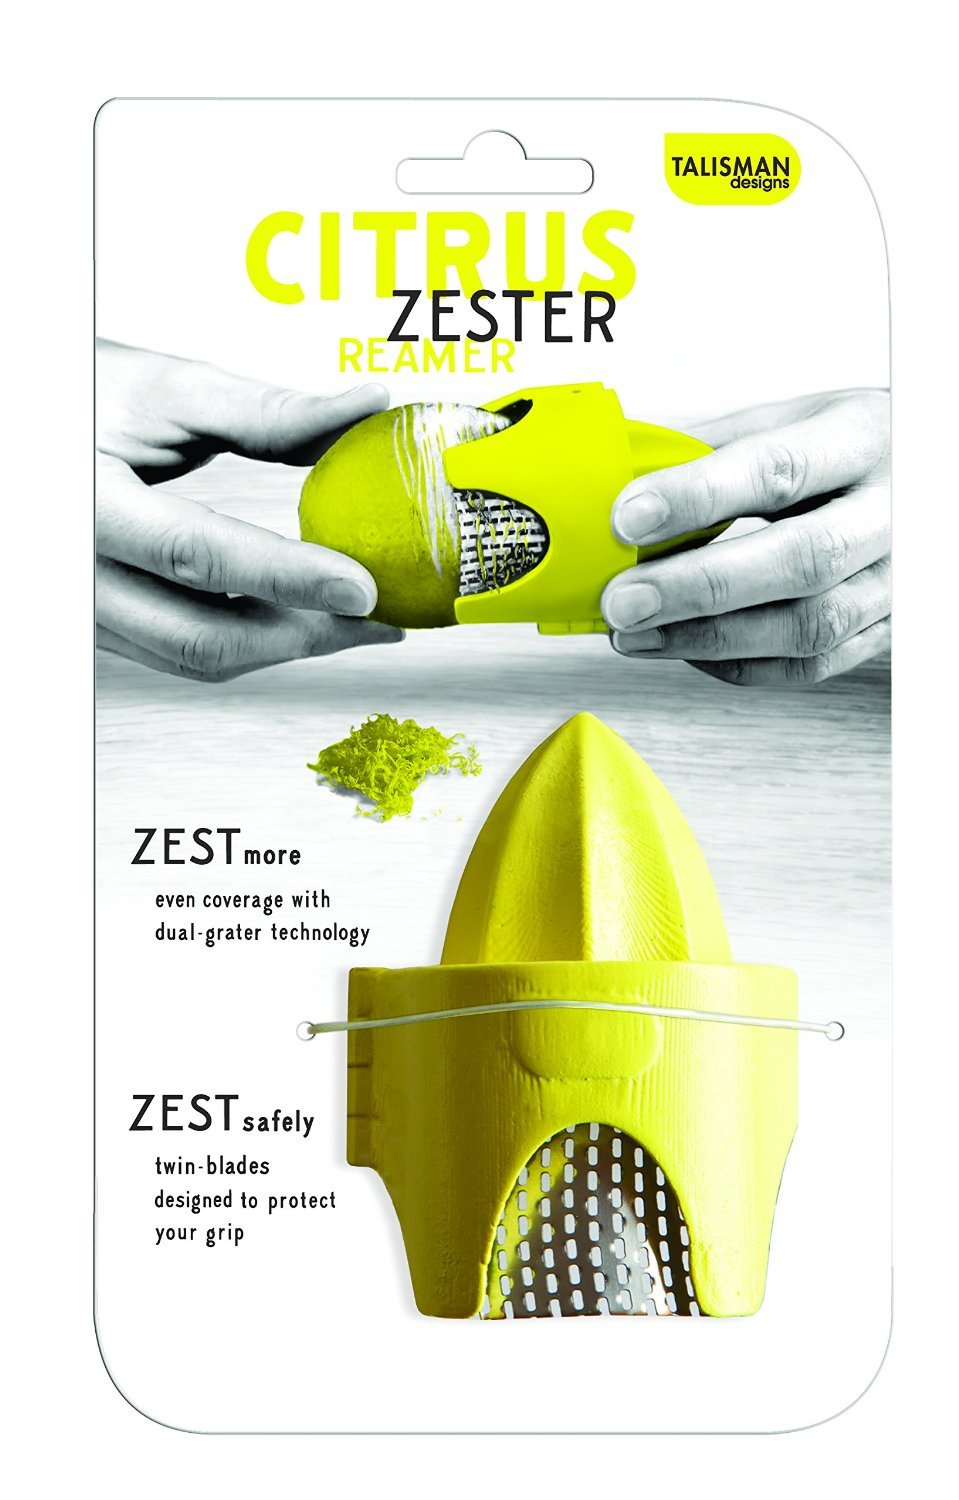 Talisman Designs Citrus Zester & Reamer, for Lemons and Limes, BPA-free Plastic and Stainless Steel, 2-Pack by Talisman Designs